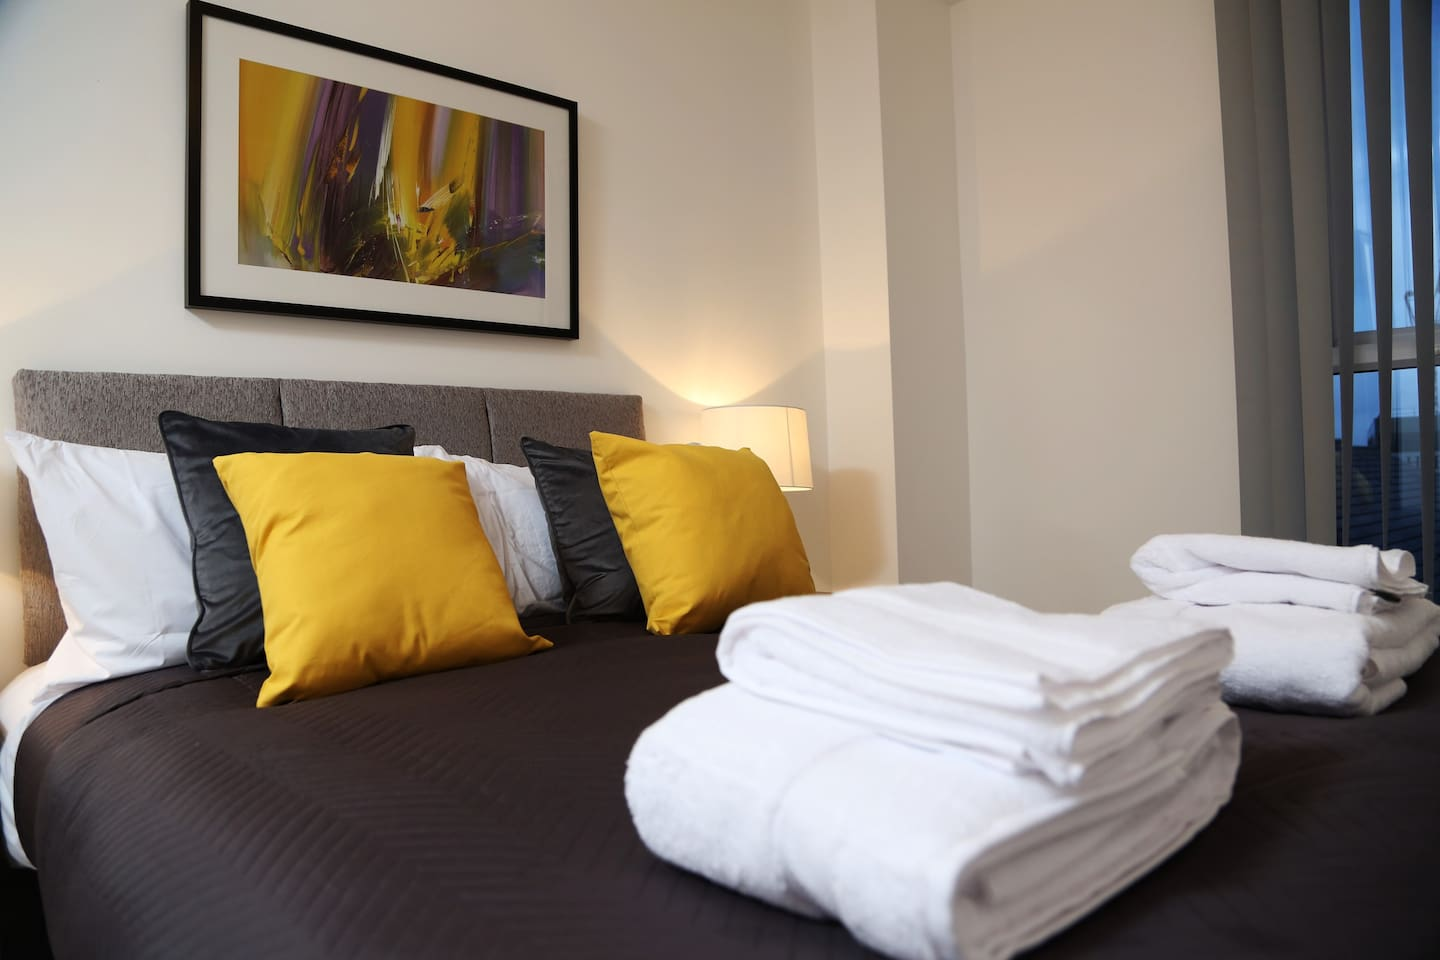 Our luxury stunning double bed with soft semi-Orthopaedic Mattress.